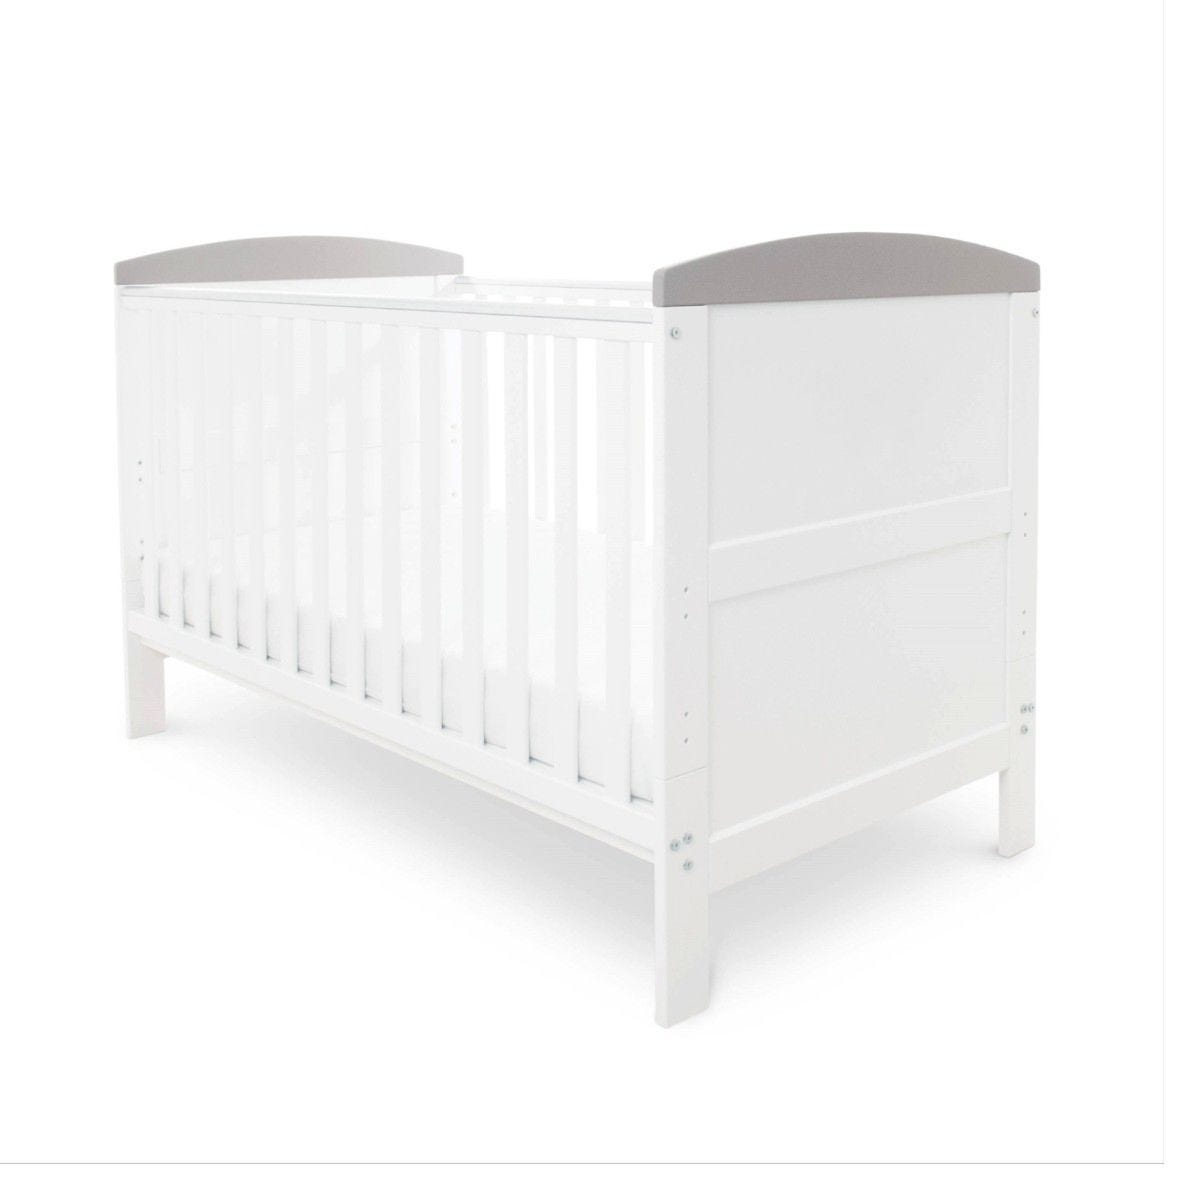 Ickle Bubba Coleby Classic Cot Bed And Pocket Sprung Mattress White with Grey Trim